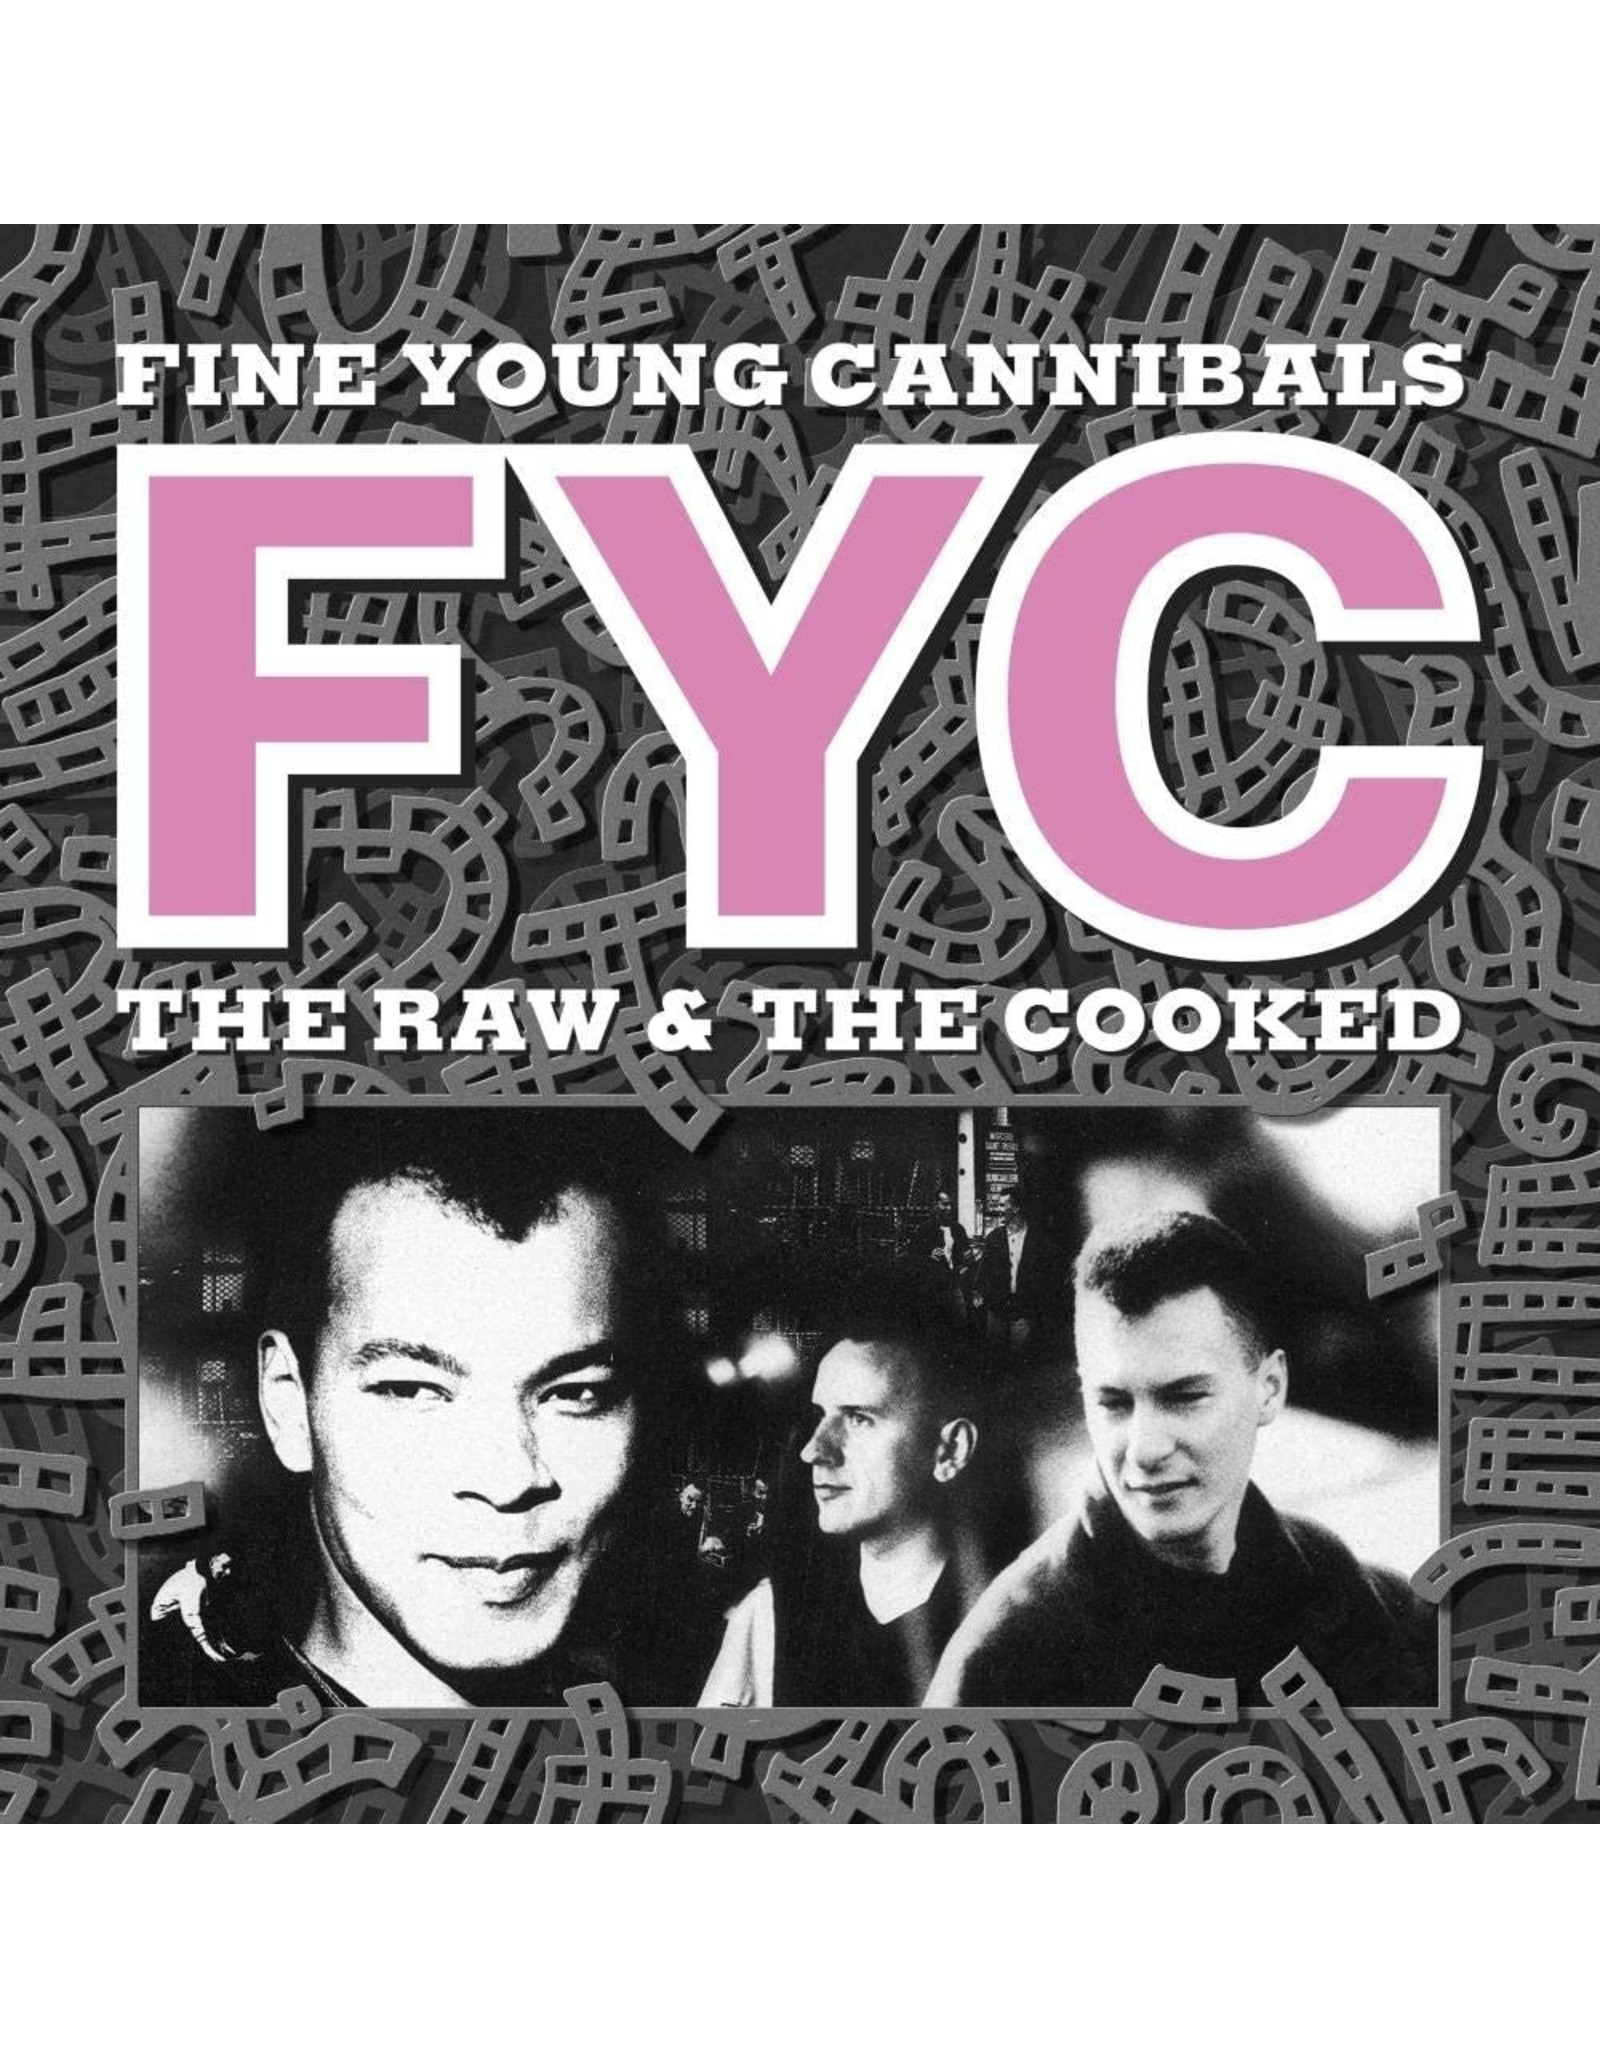 Fine Young Cannibals - The Raw & The Cooked (White Vinyl)